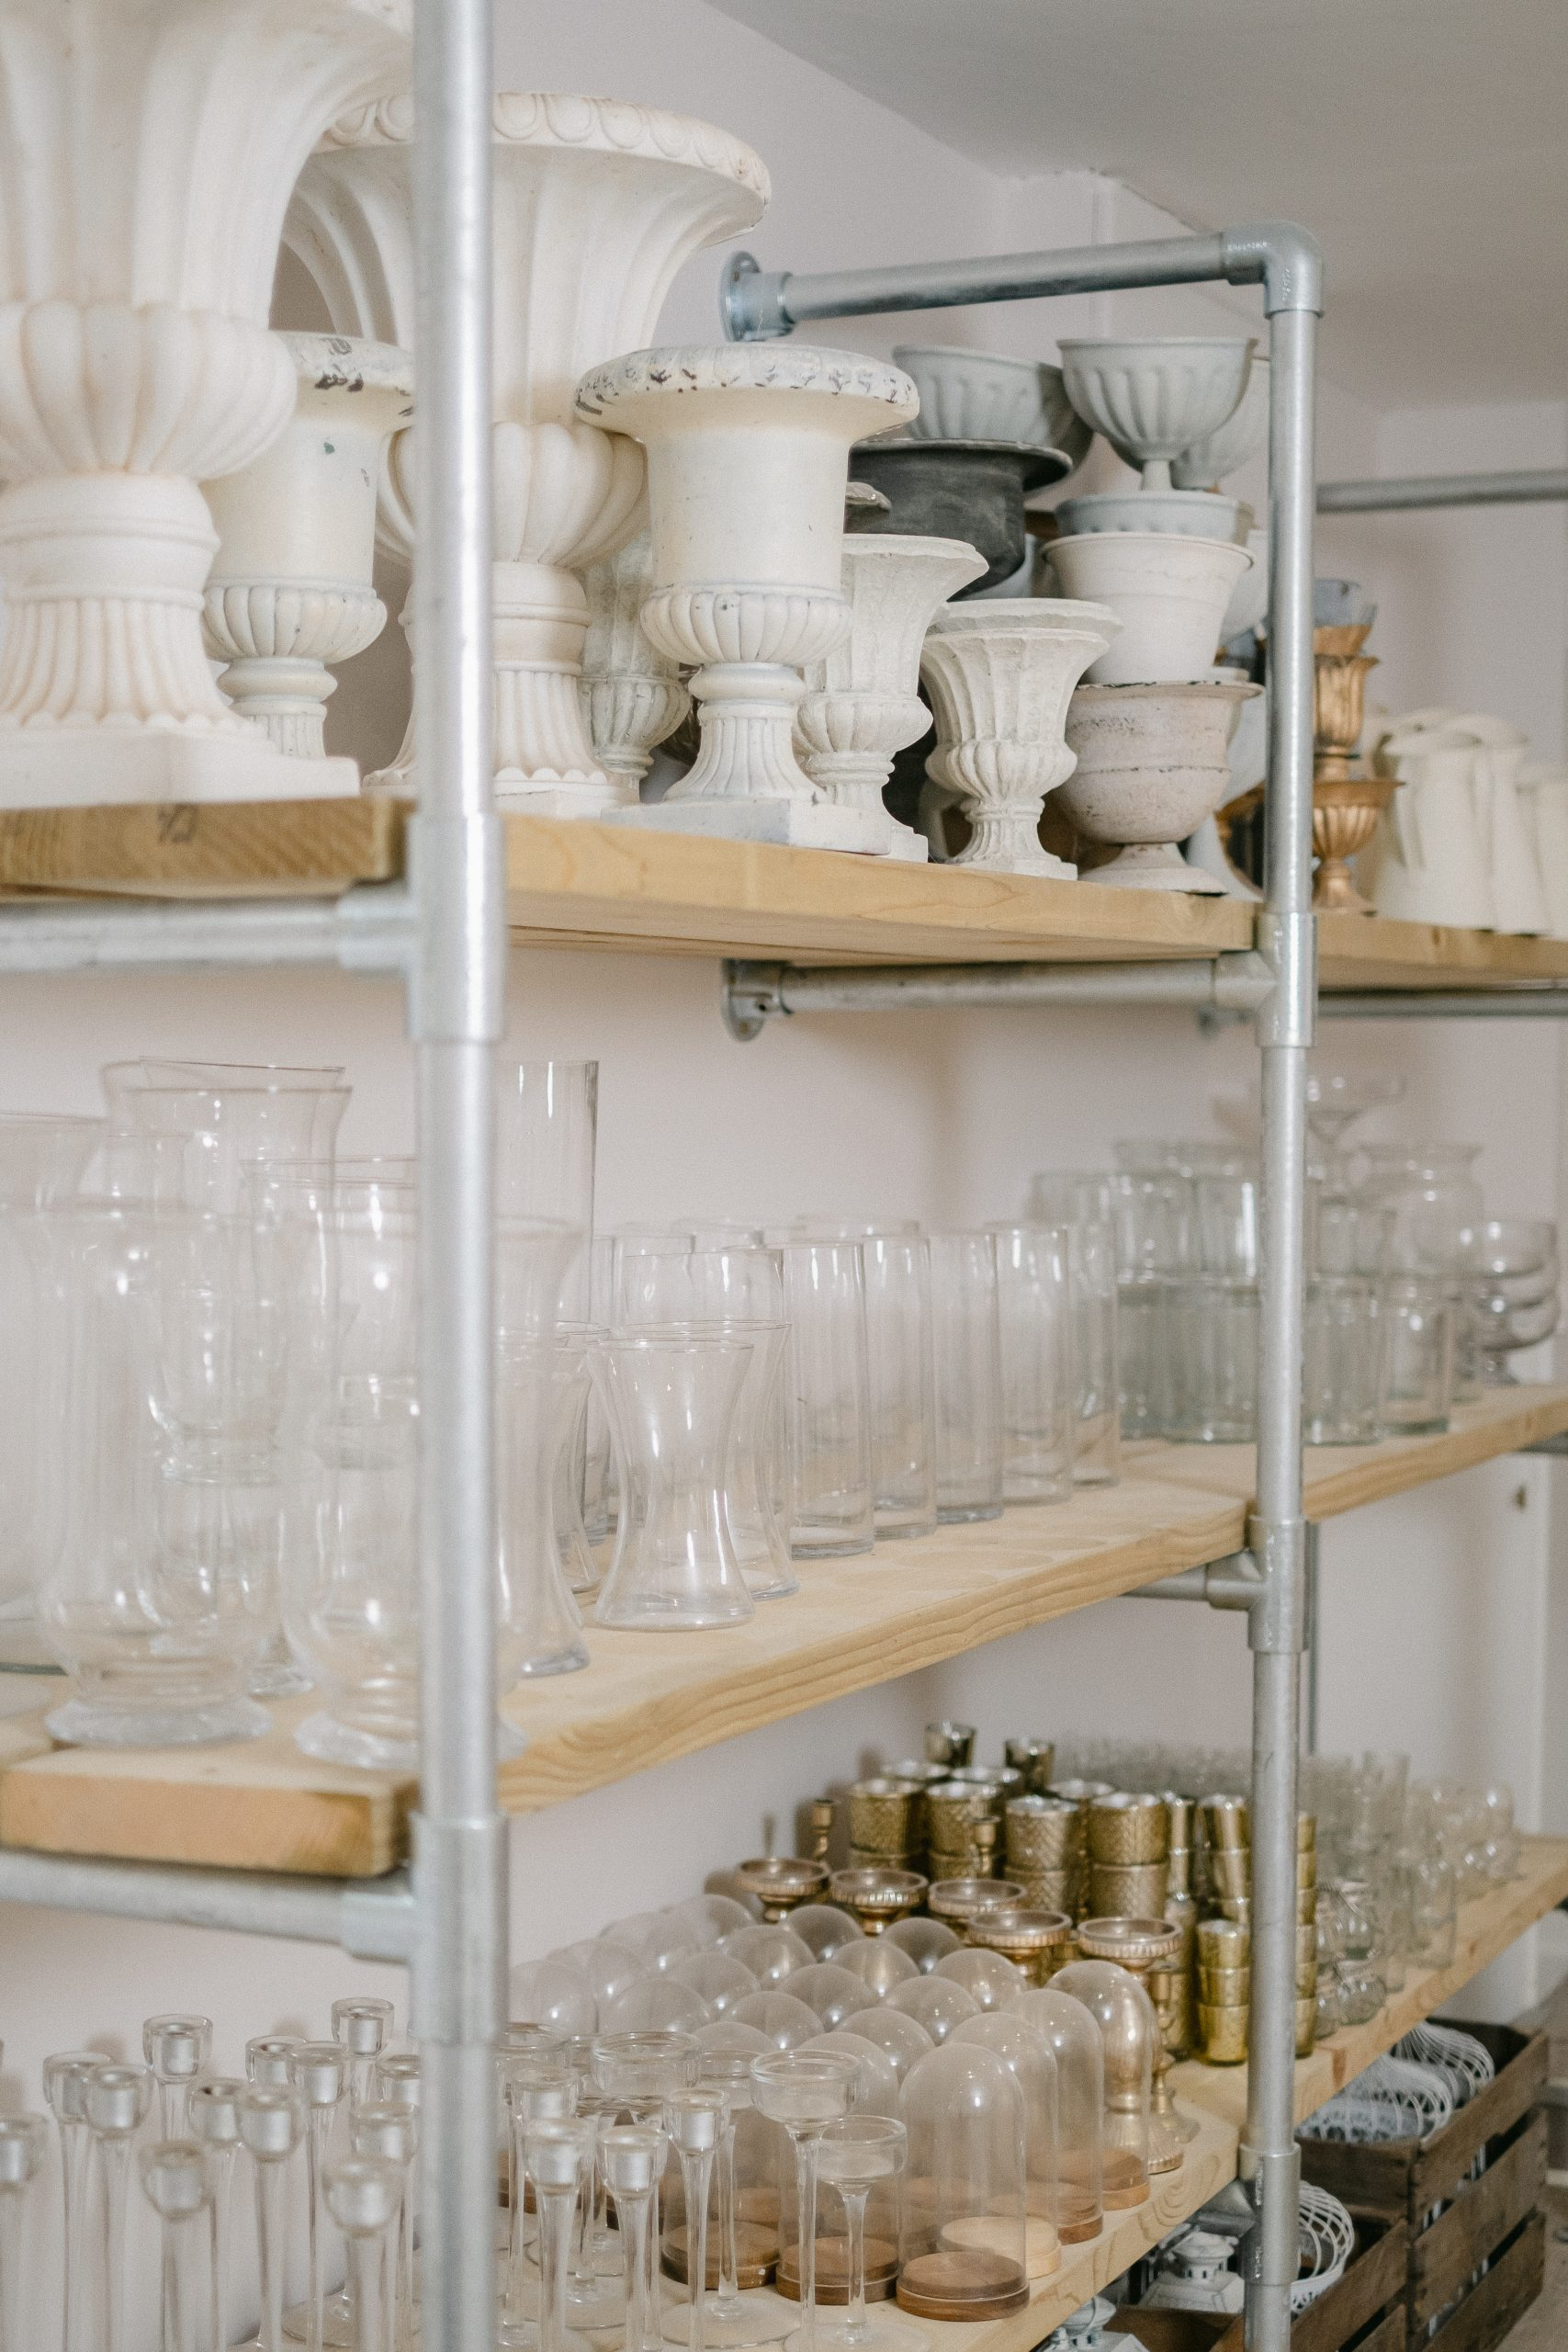 vases and urns on shelving